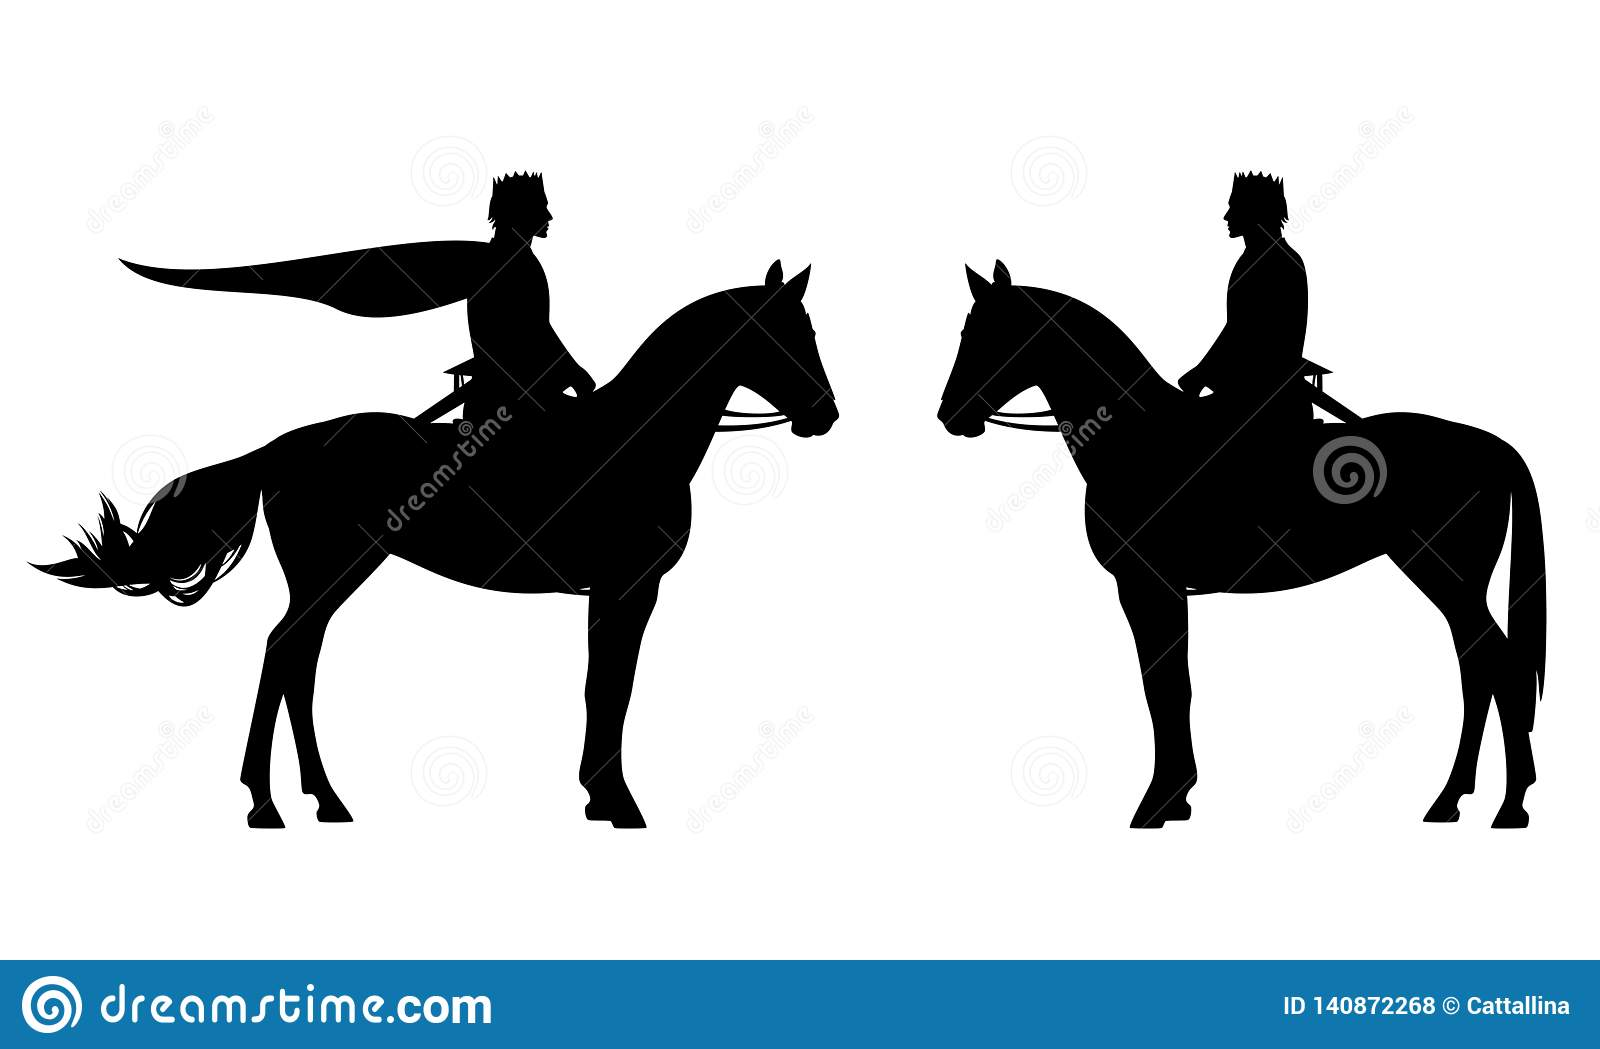 Medieval King Riding A Horse Black Vector Silhouette Stock Vector Illustration Of Side Outline 140872268